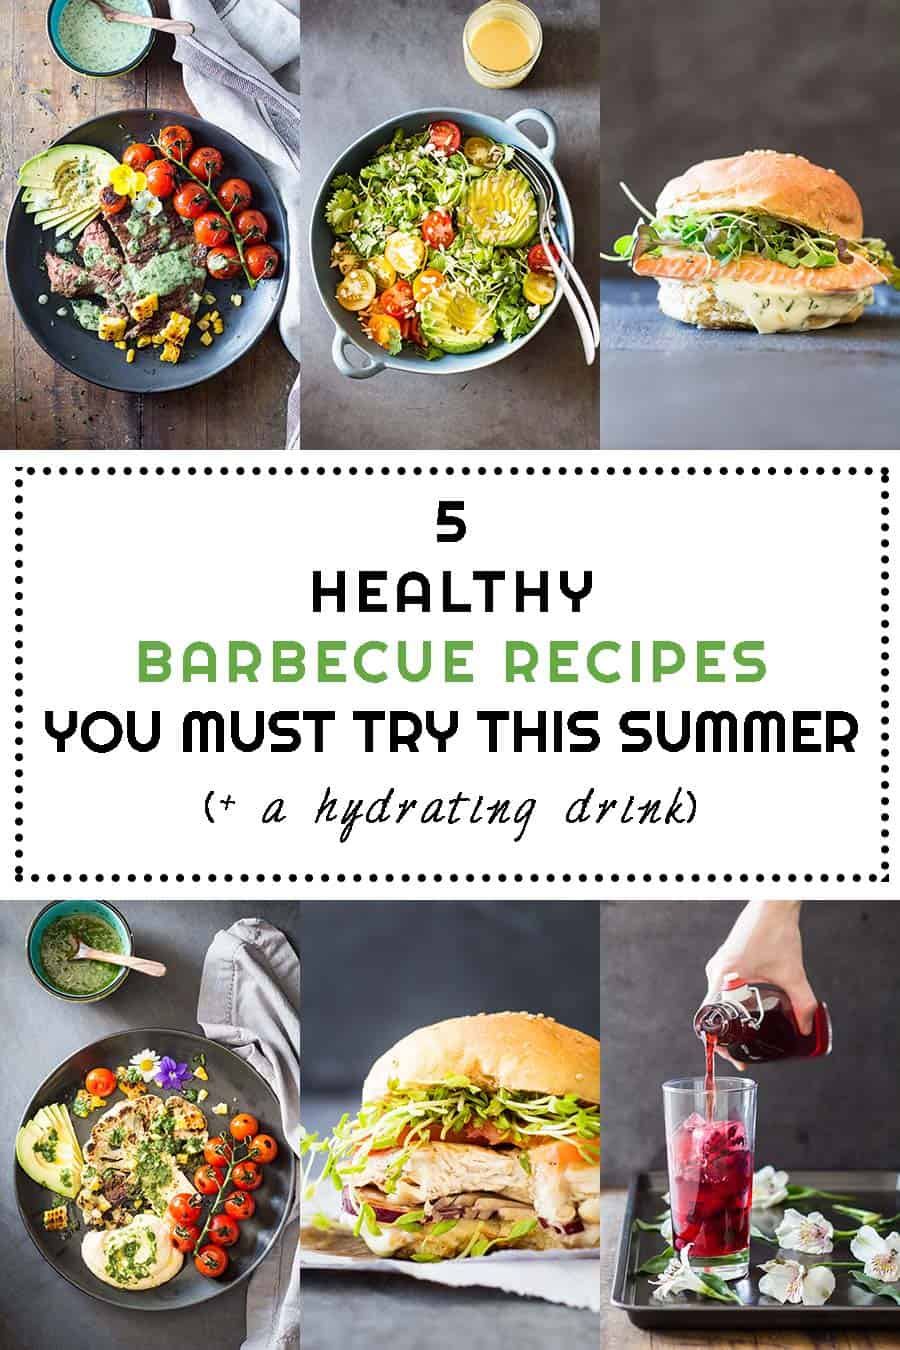 5 Healthy Barbecue Recipes You Must Try This Summer